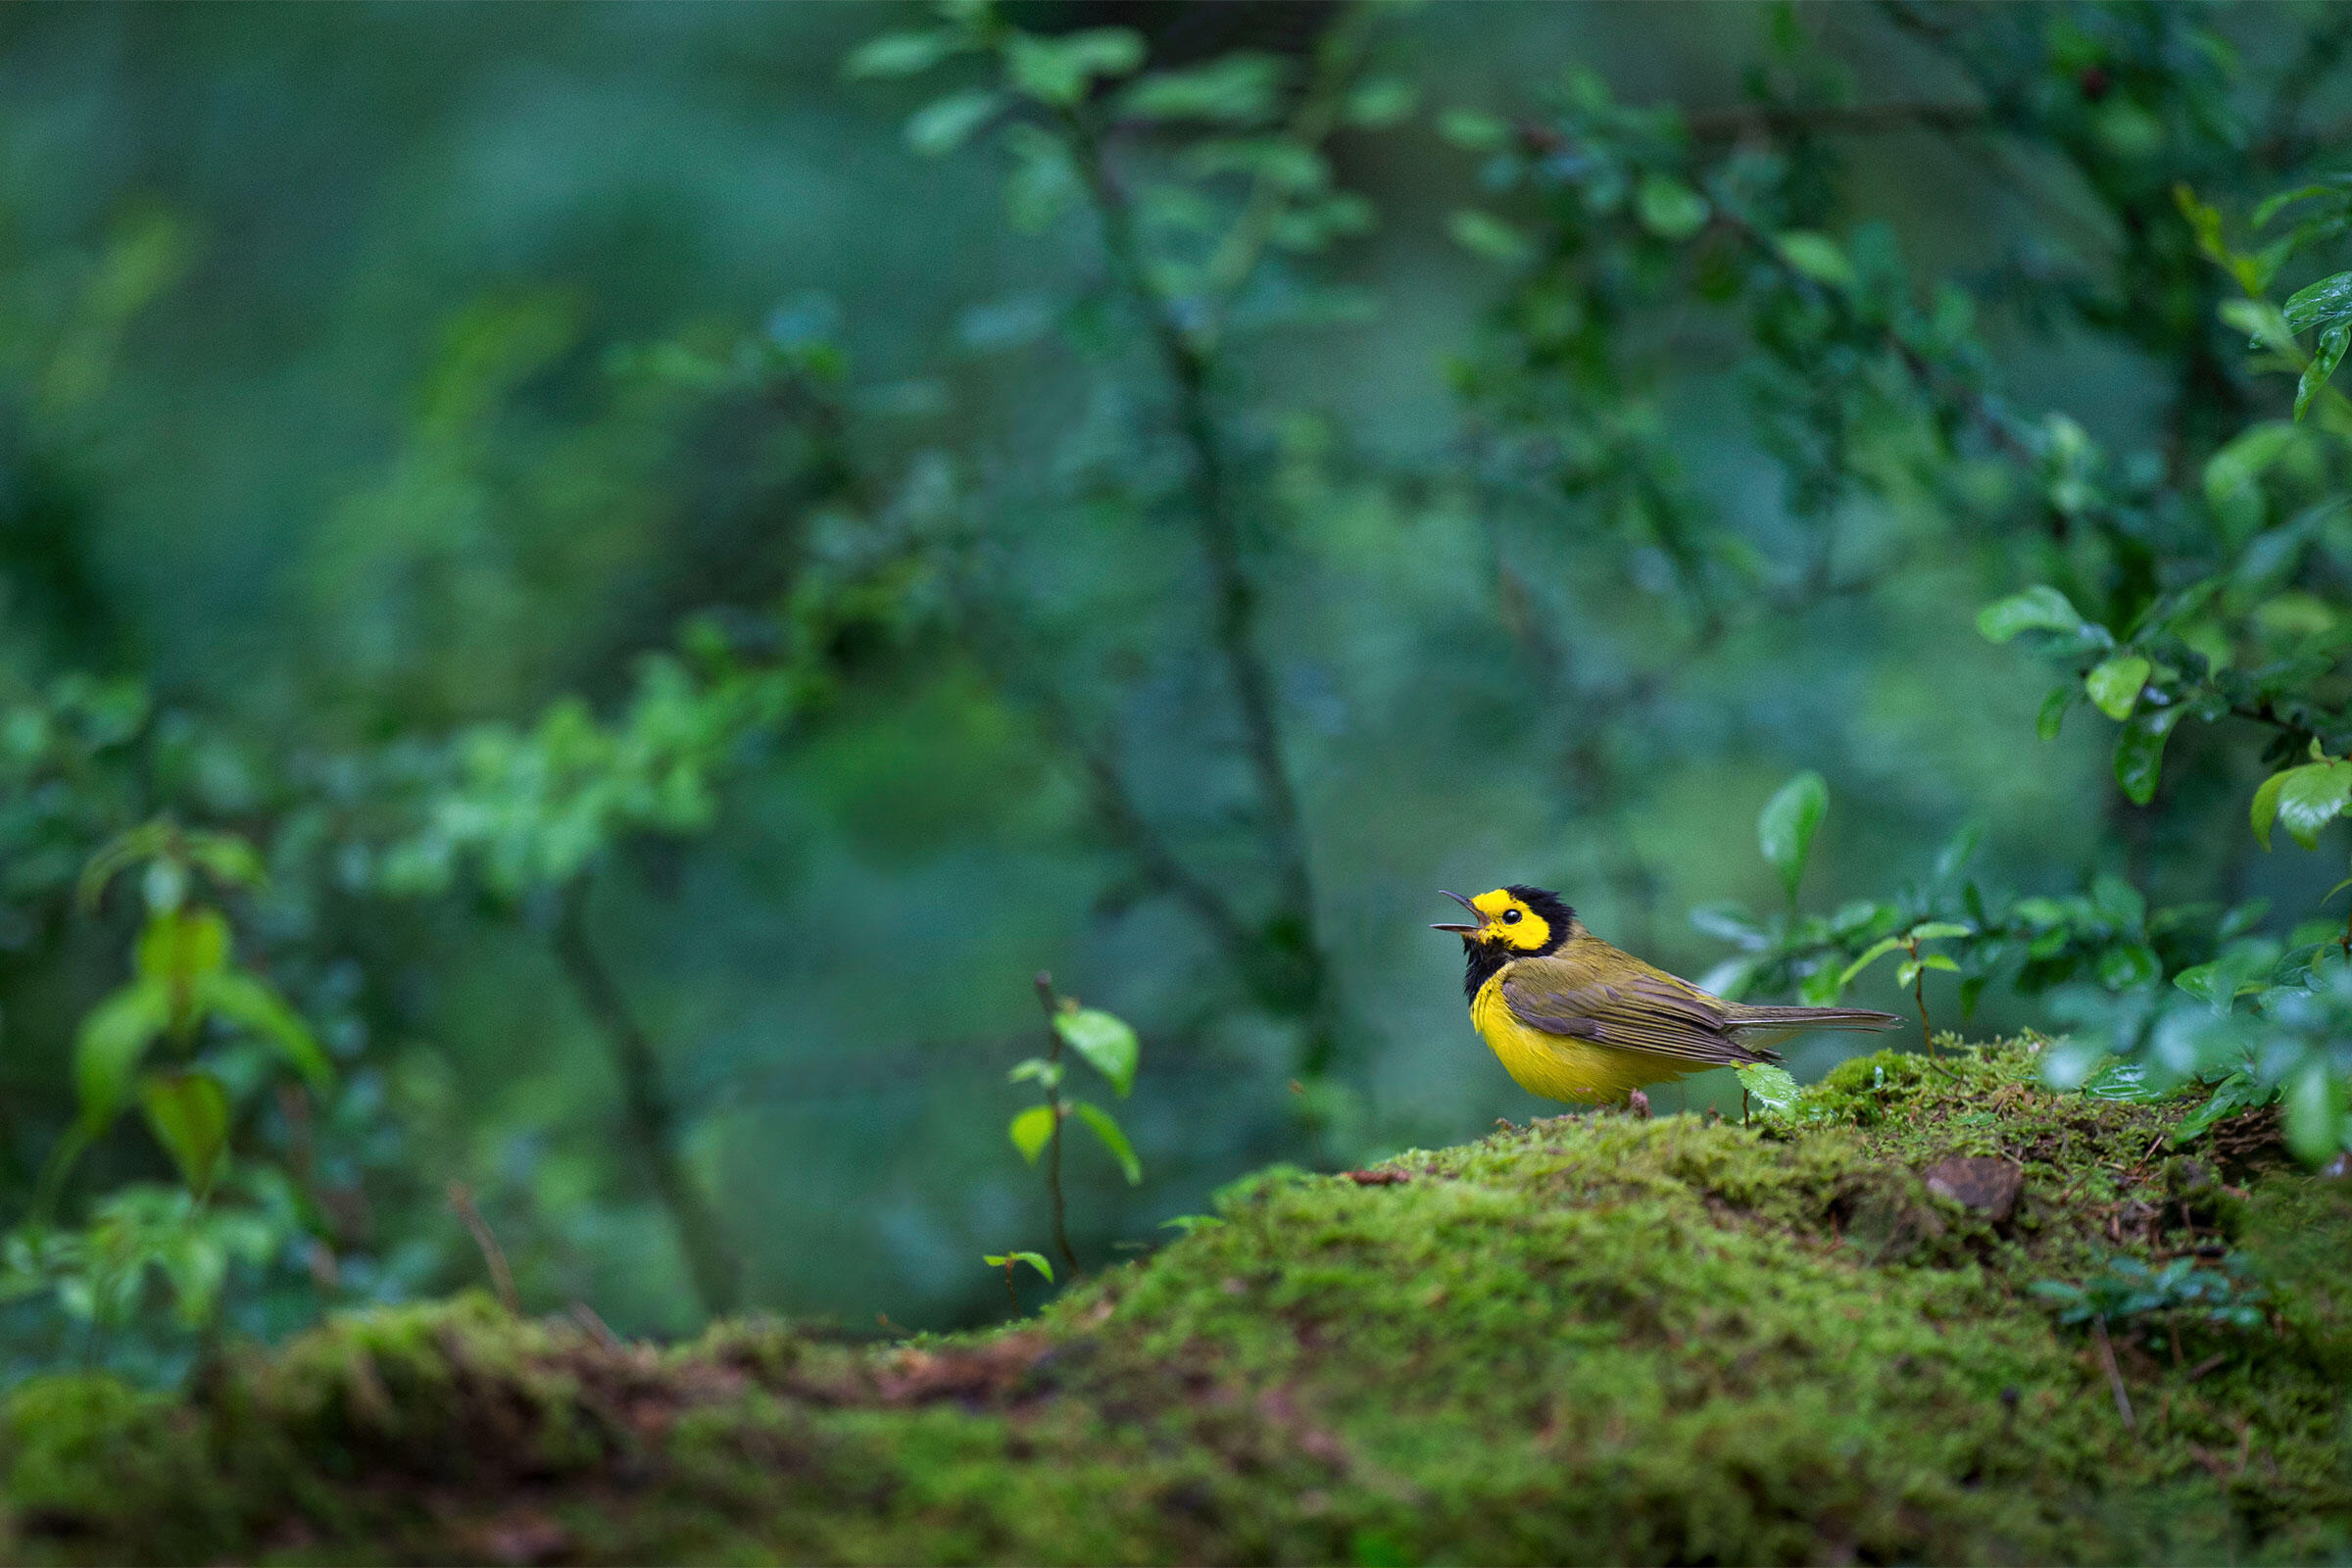 Hooded Warbler. Ray Hennessy/iStock